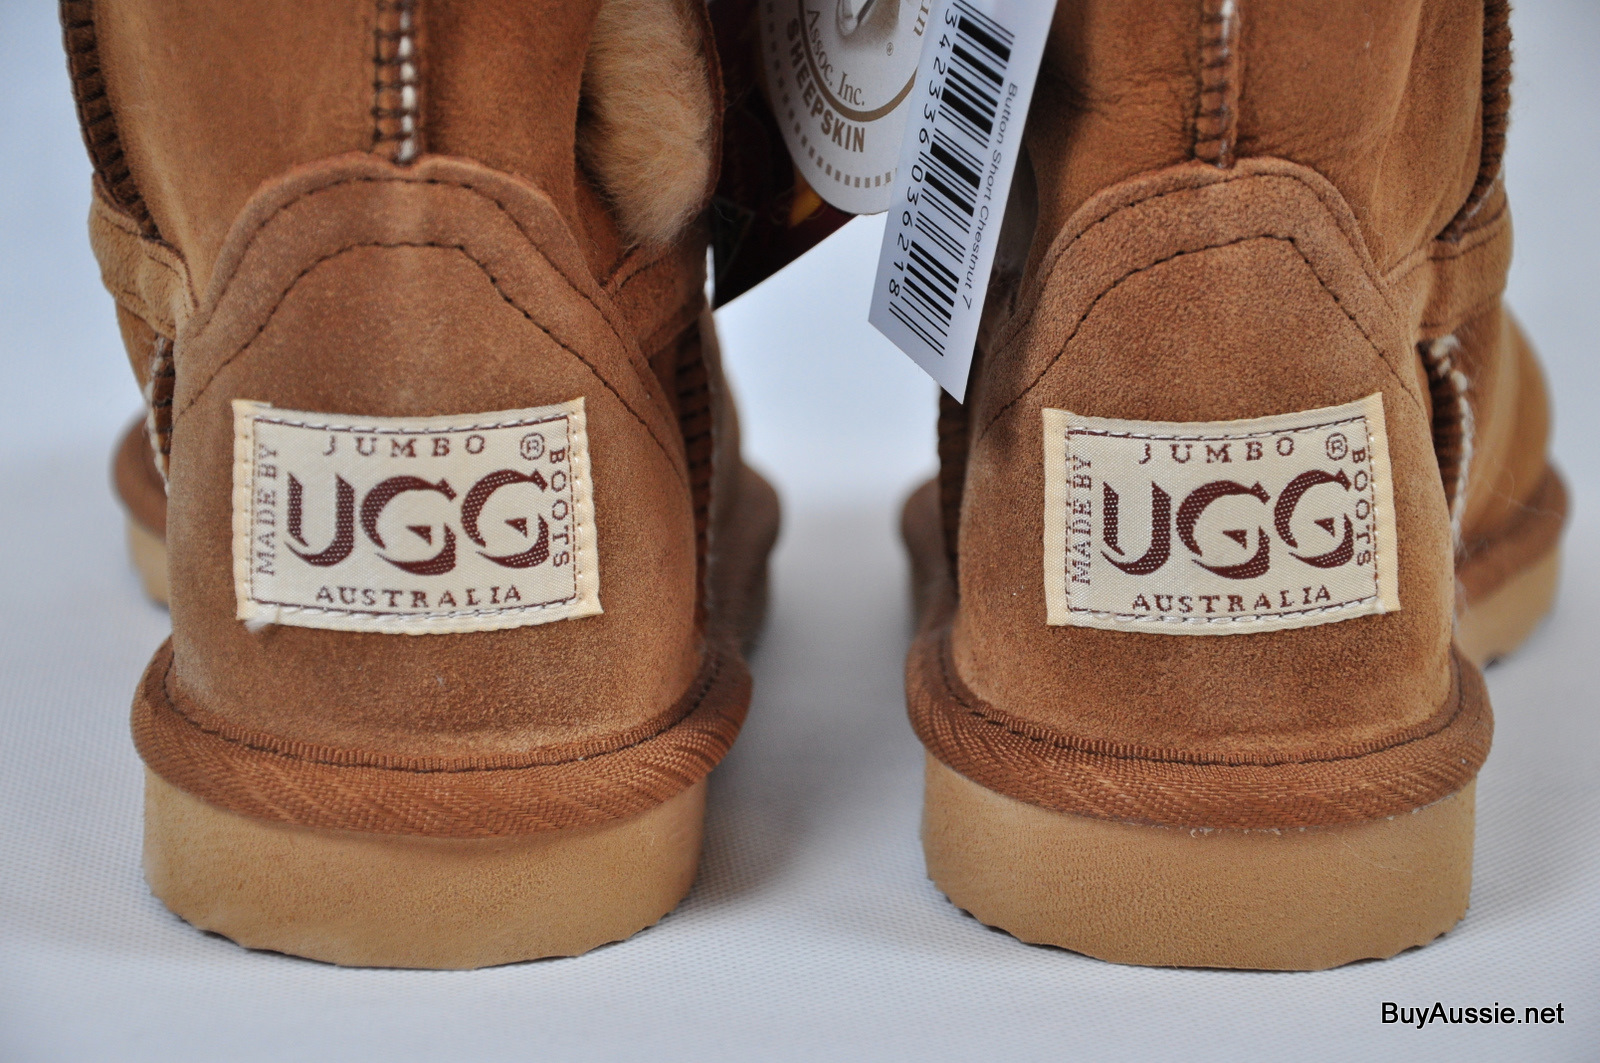 737d68ed29f Jumbo Ugg Boots Us - cheap watches mgc-gas.com